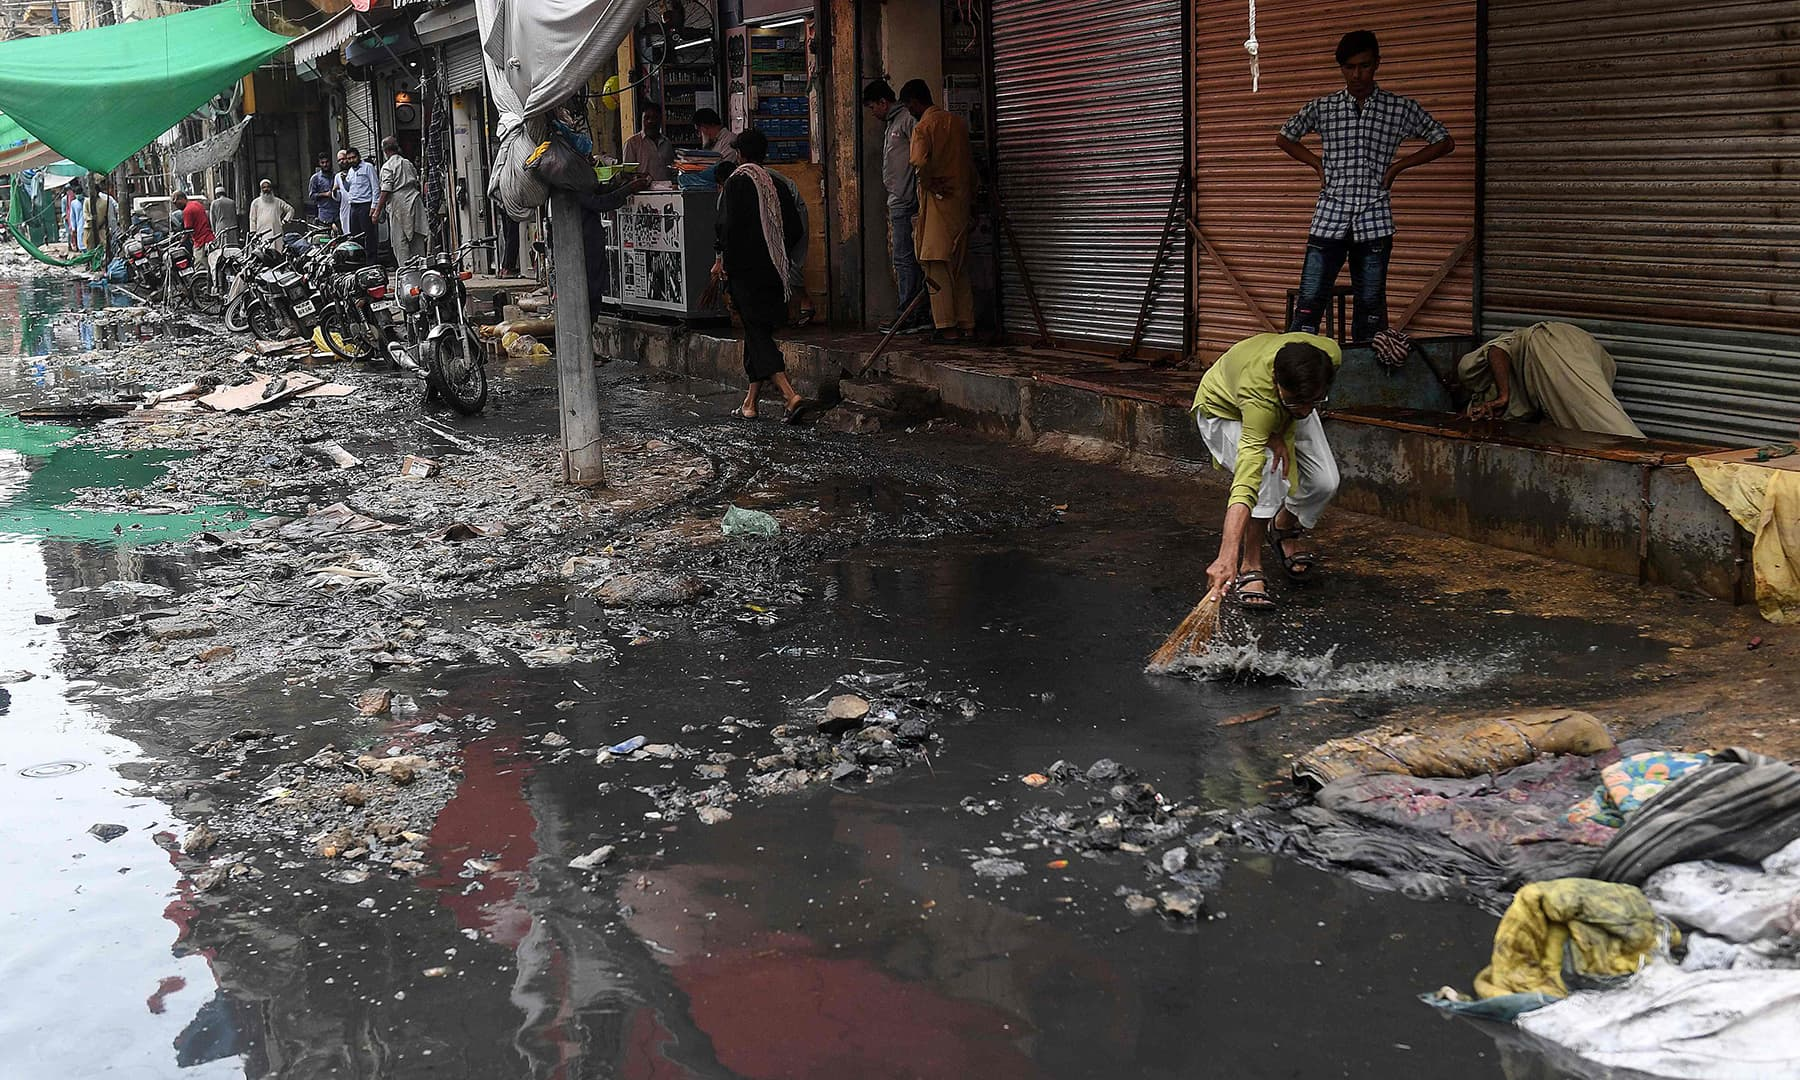 A man cleans in front of shops after a street flooded following heavy monsoon rains in Karachi on August 31. — AFP